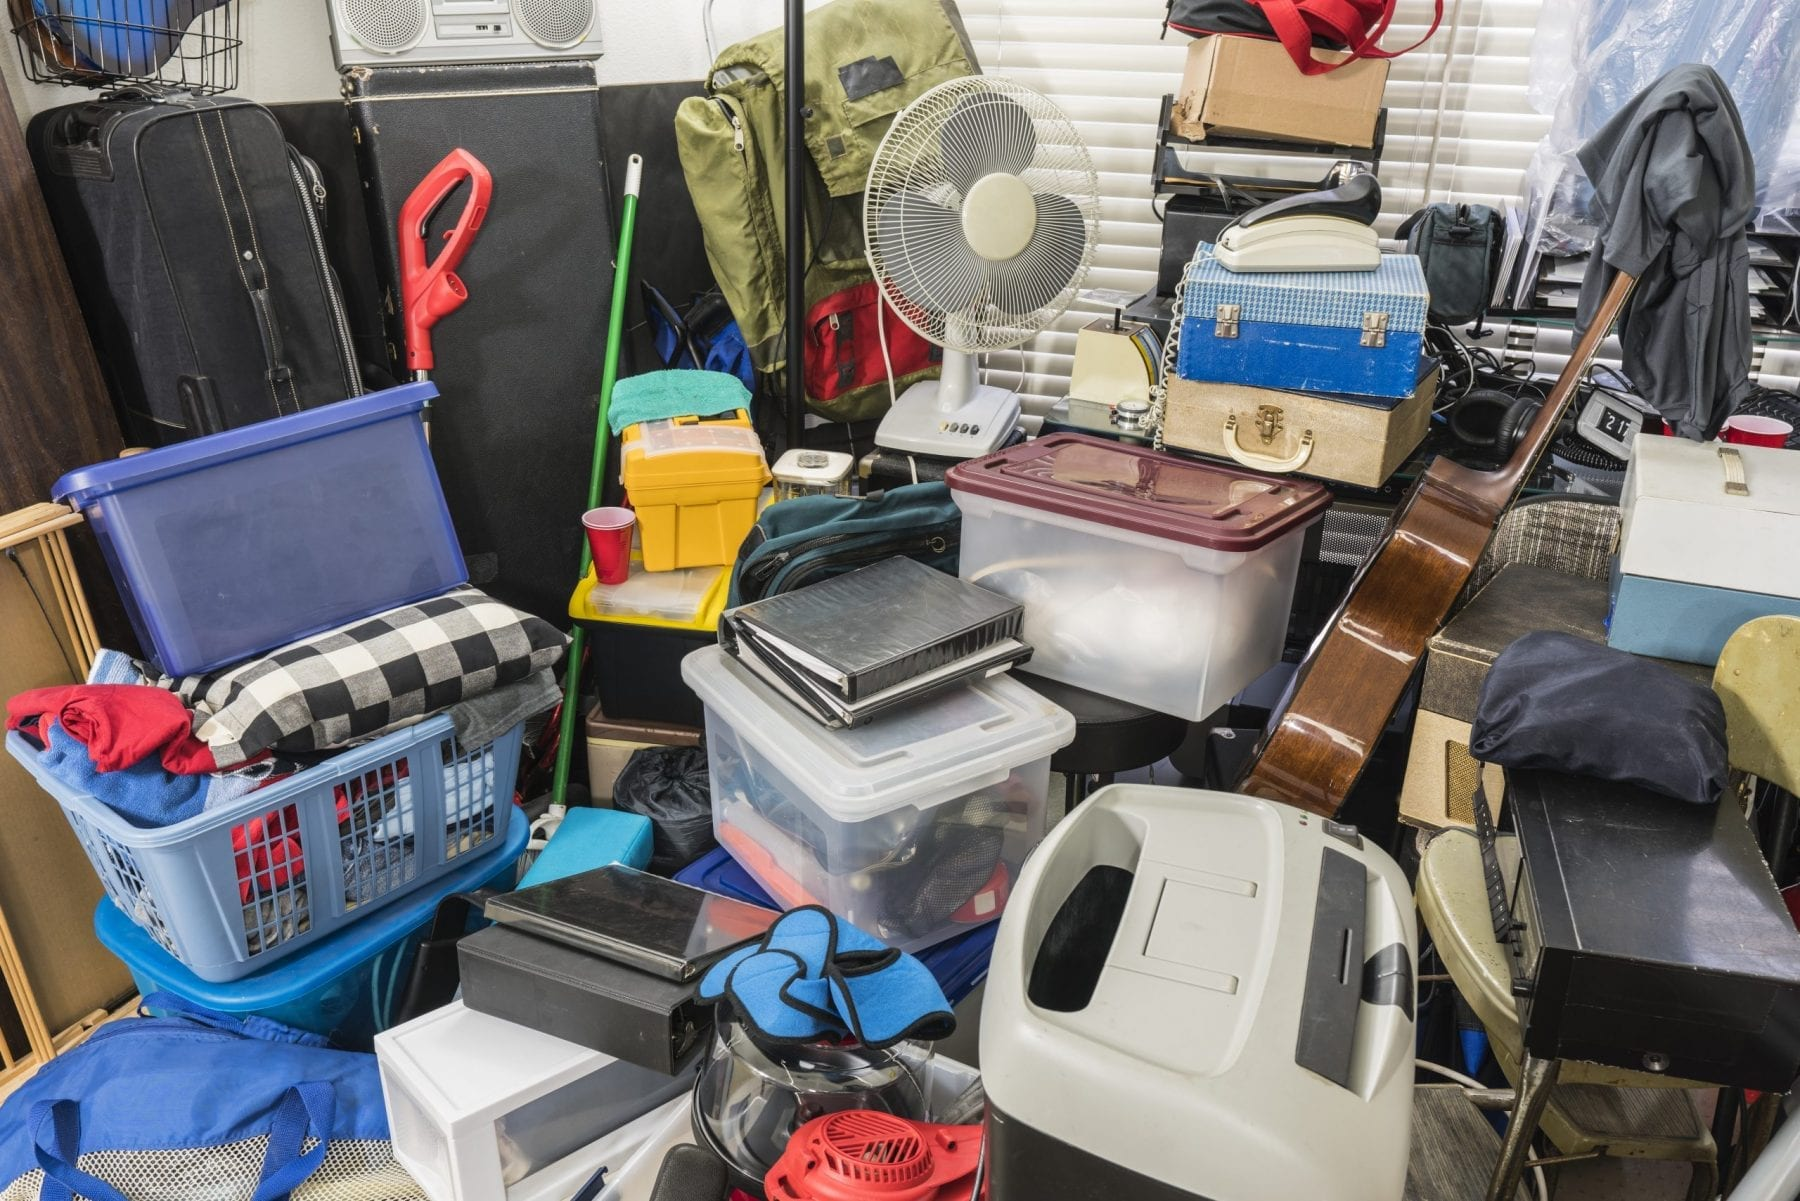 Home packed with stored boxes, vintage electronics, files, business equipment and household items.